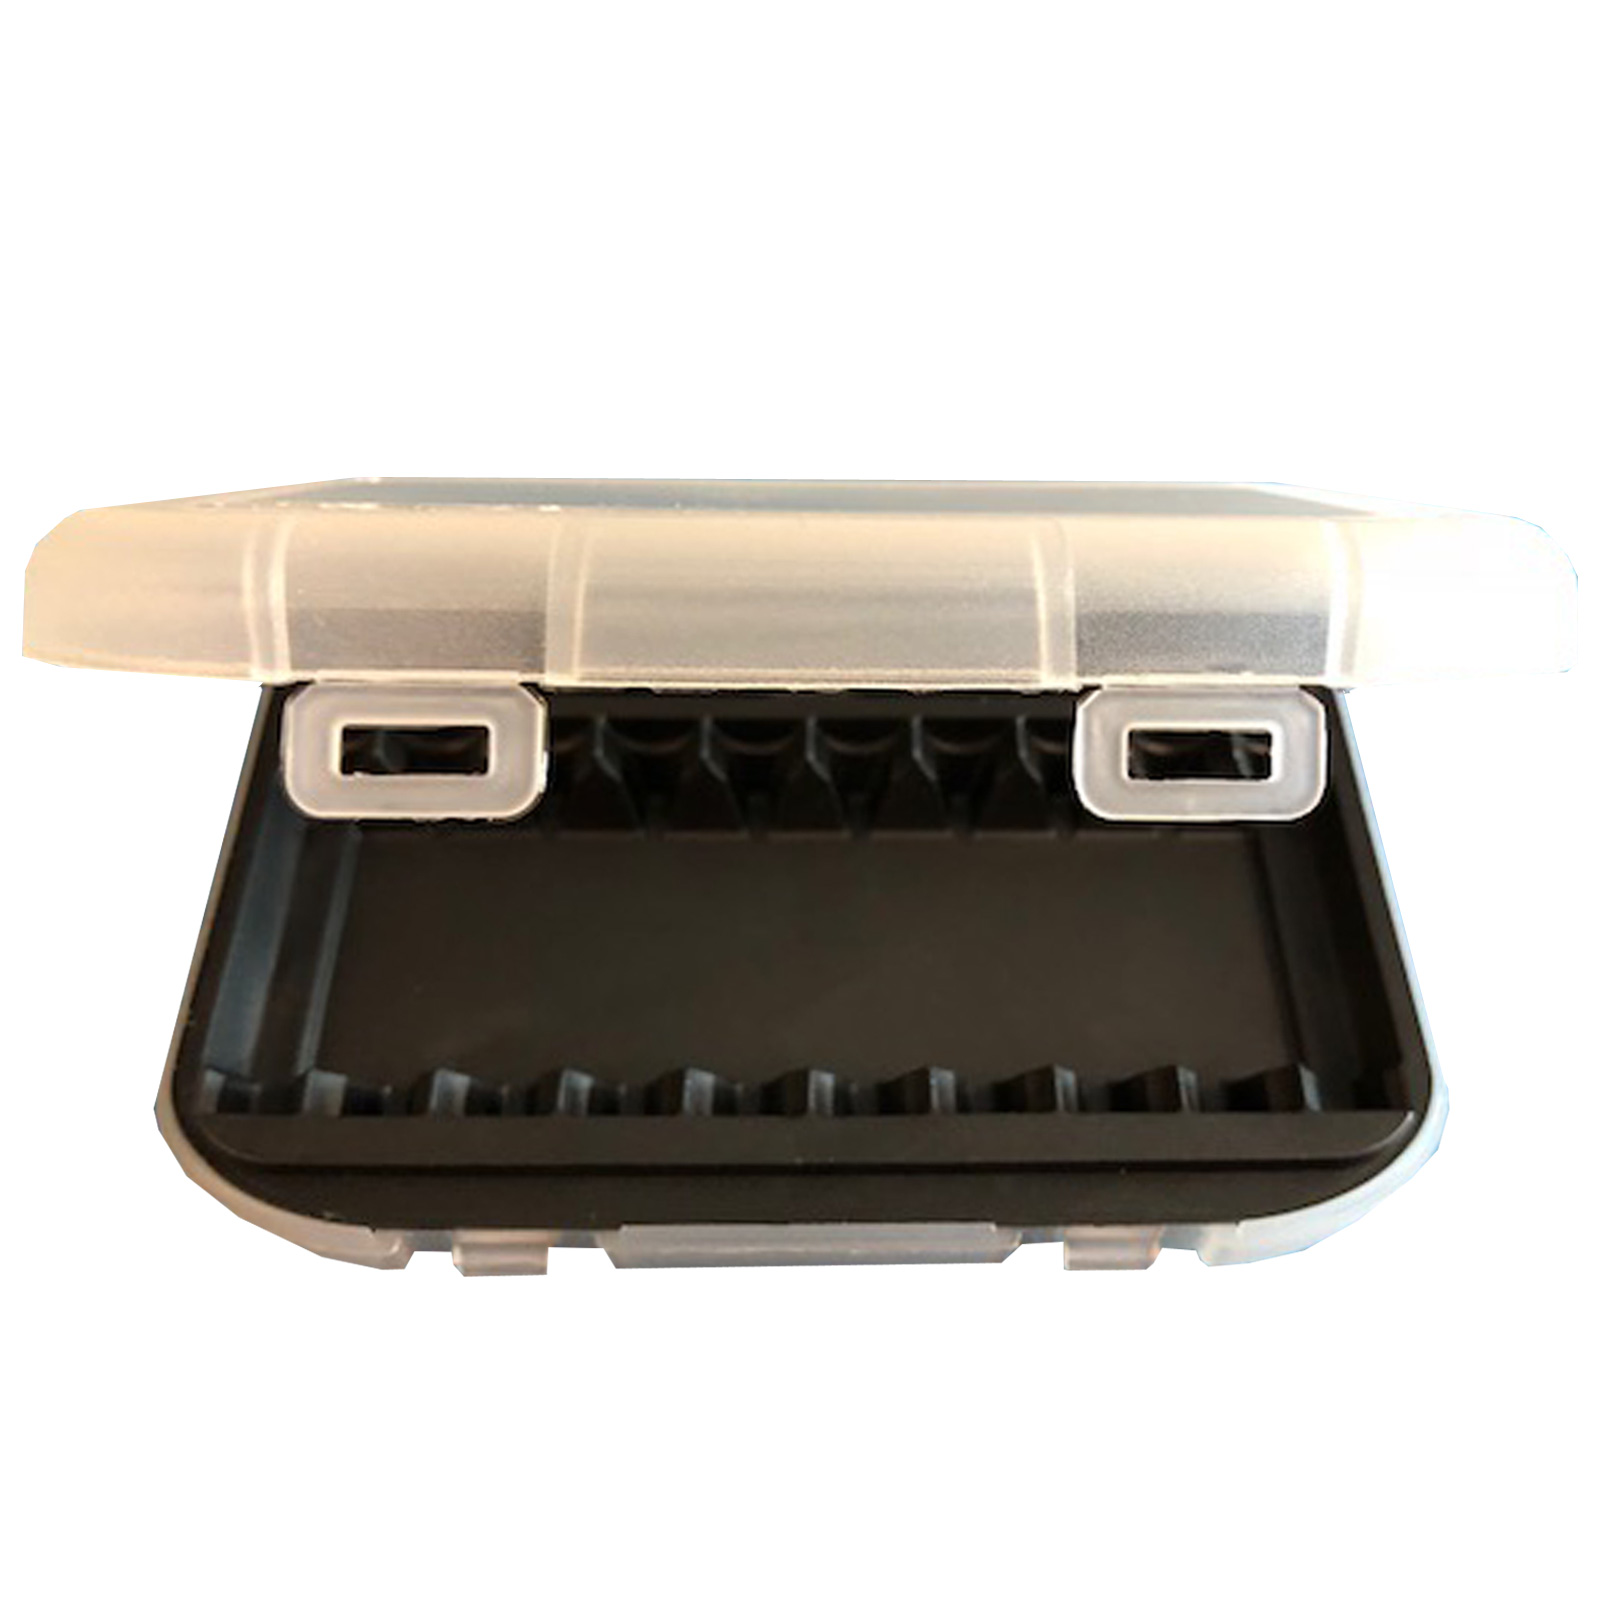 AAA Battery Case Holder Fits Any 12x AAA Batteries For Travel Safety TSA Carryon Non Skid Feet Molded Liner Made In USA